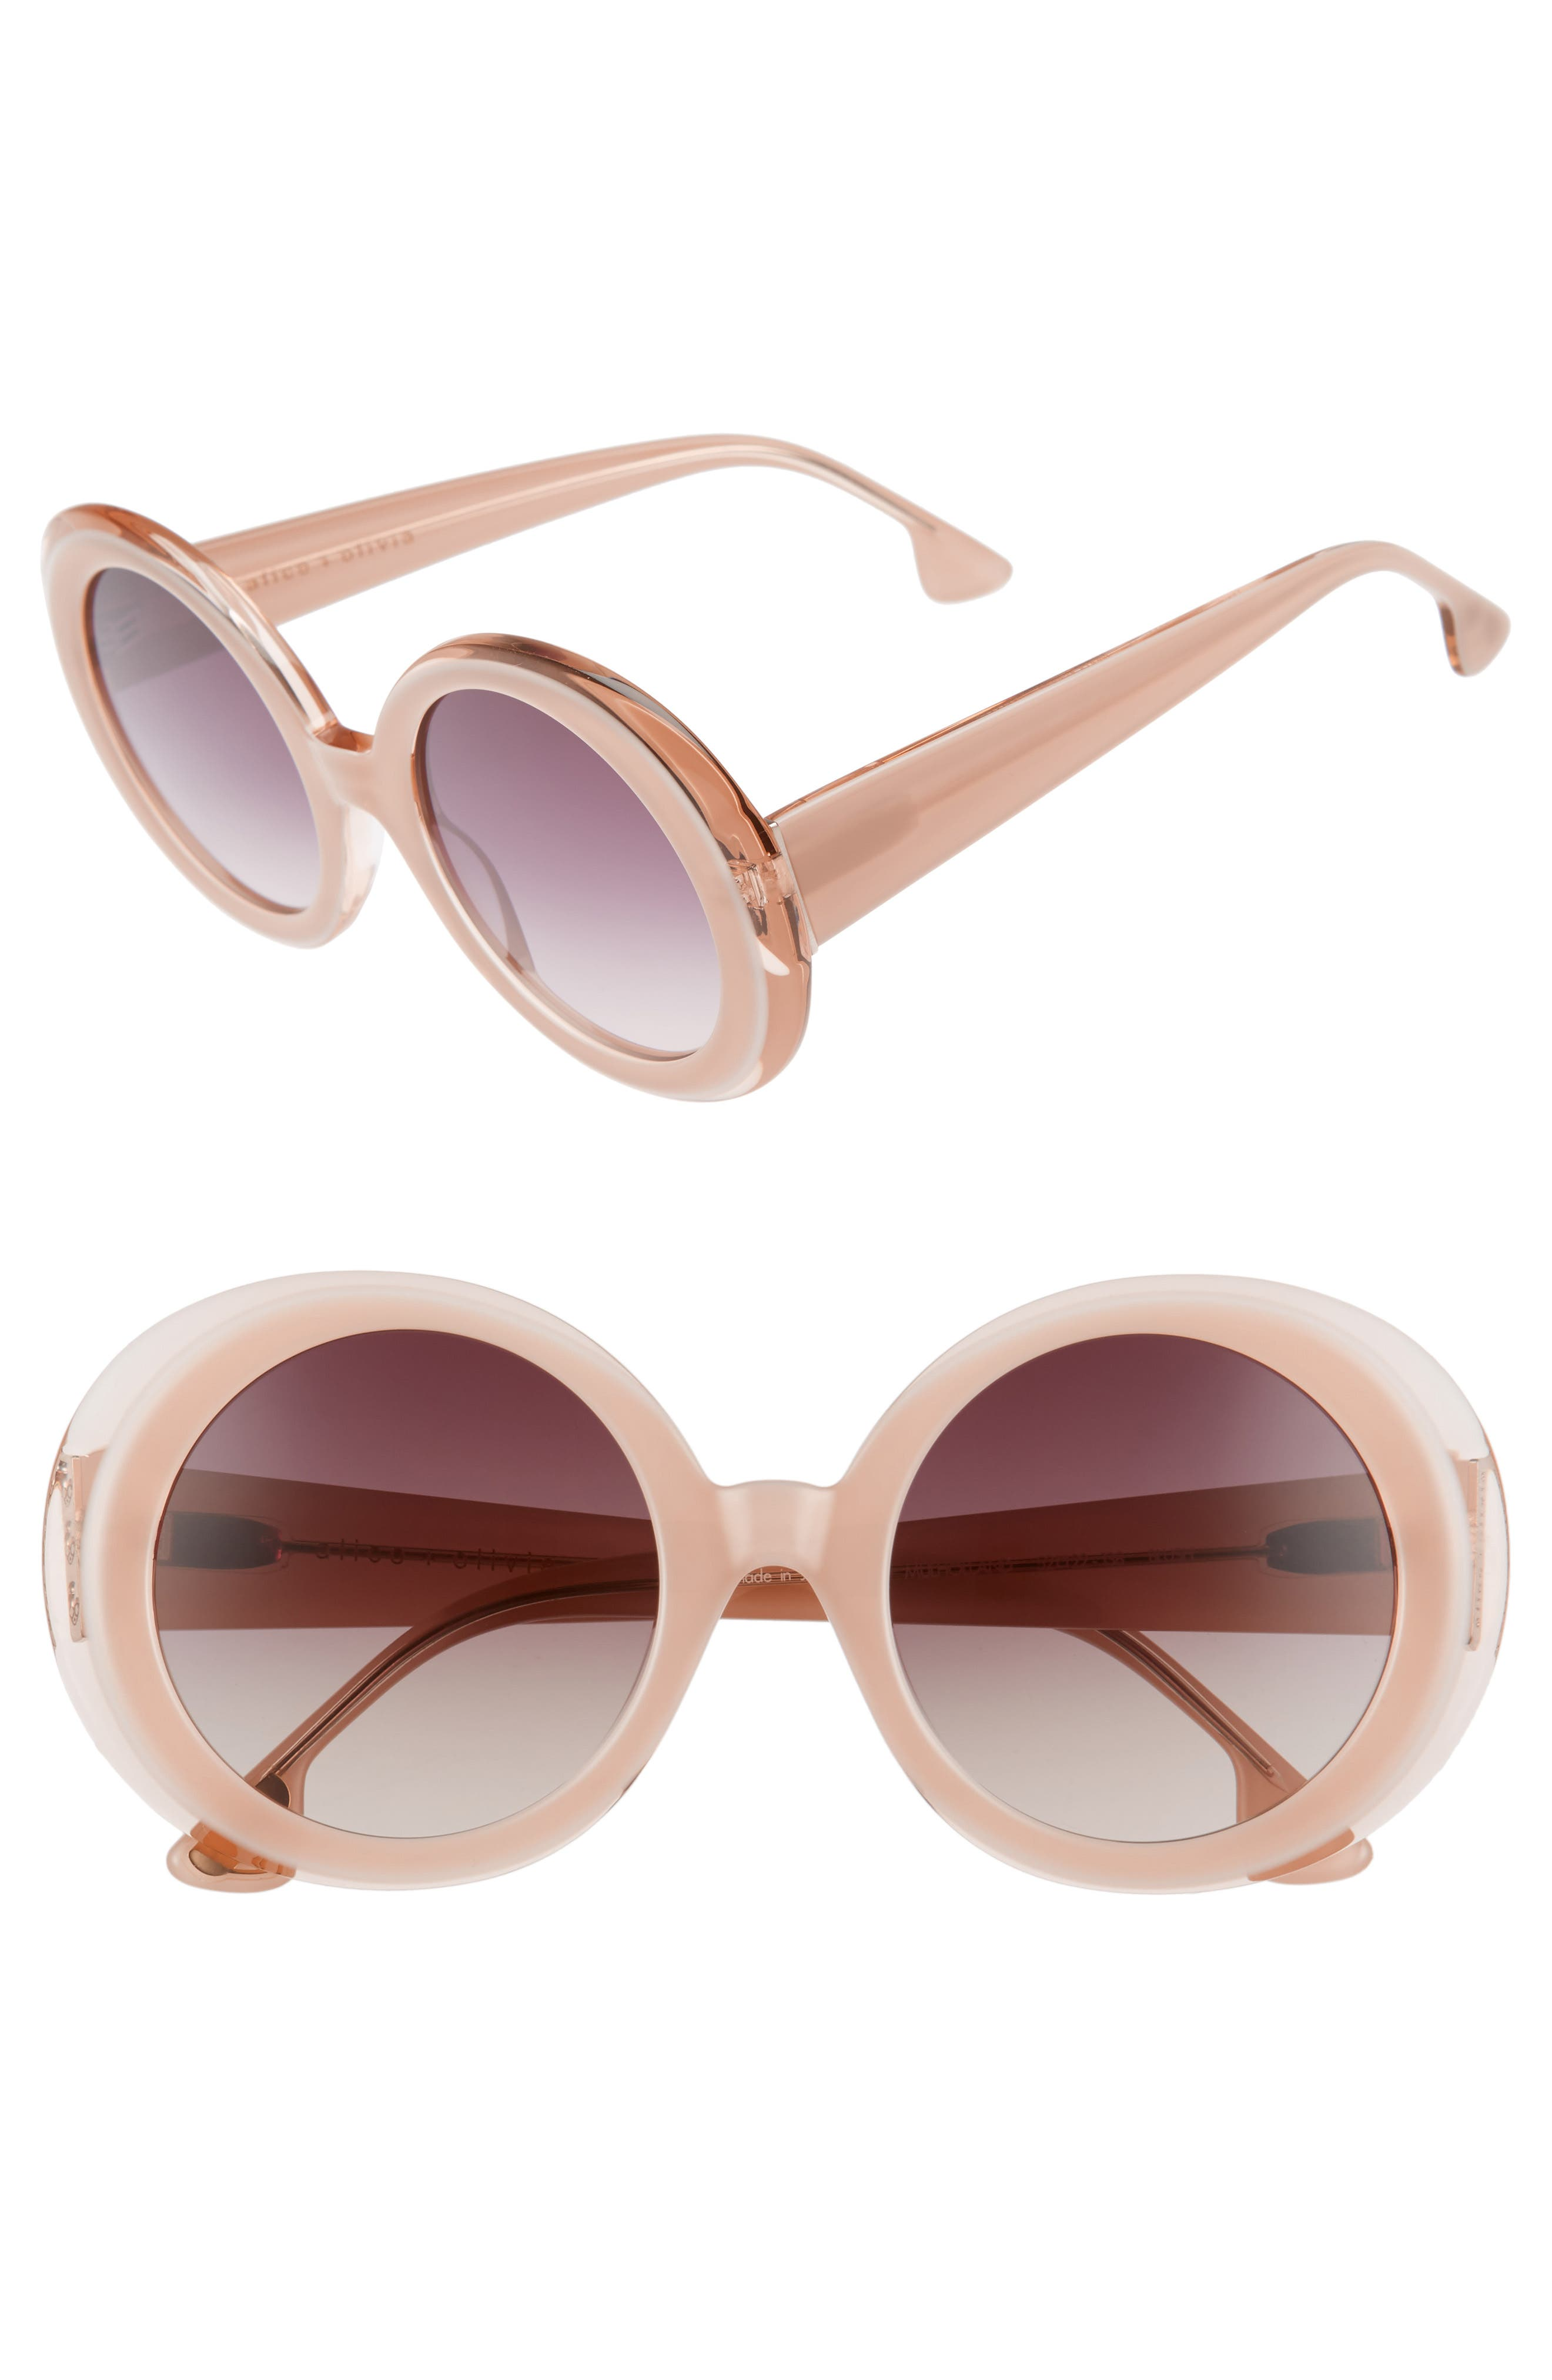 Mulholland 52mm Round Gradient Sunglasses,                         Main,                         color, Blush